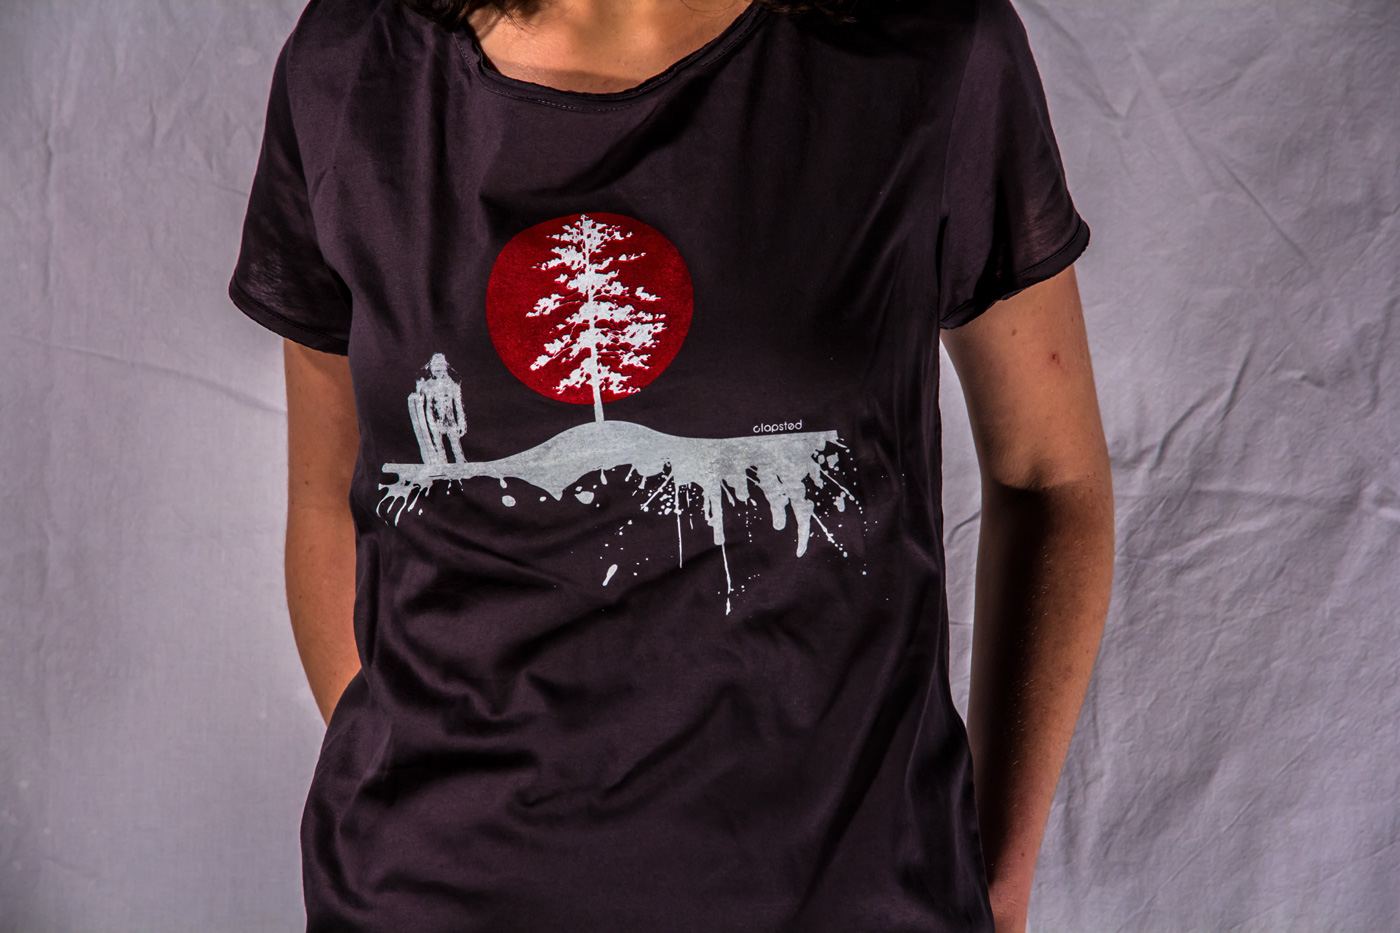 Hoodie t-shirt or tank-top with yeti and tree with sun backlight. Snowboard style print